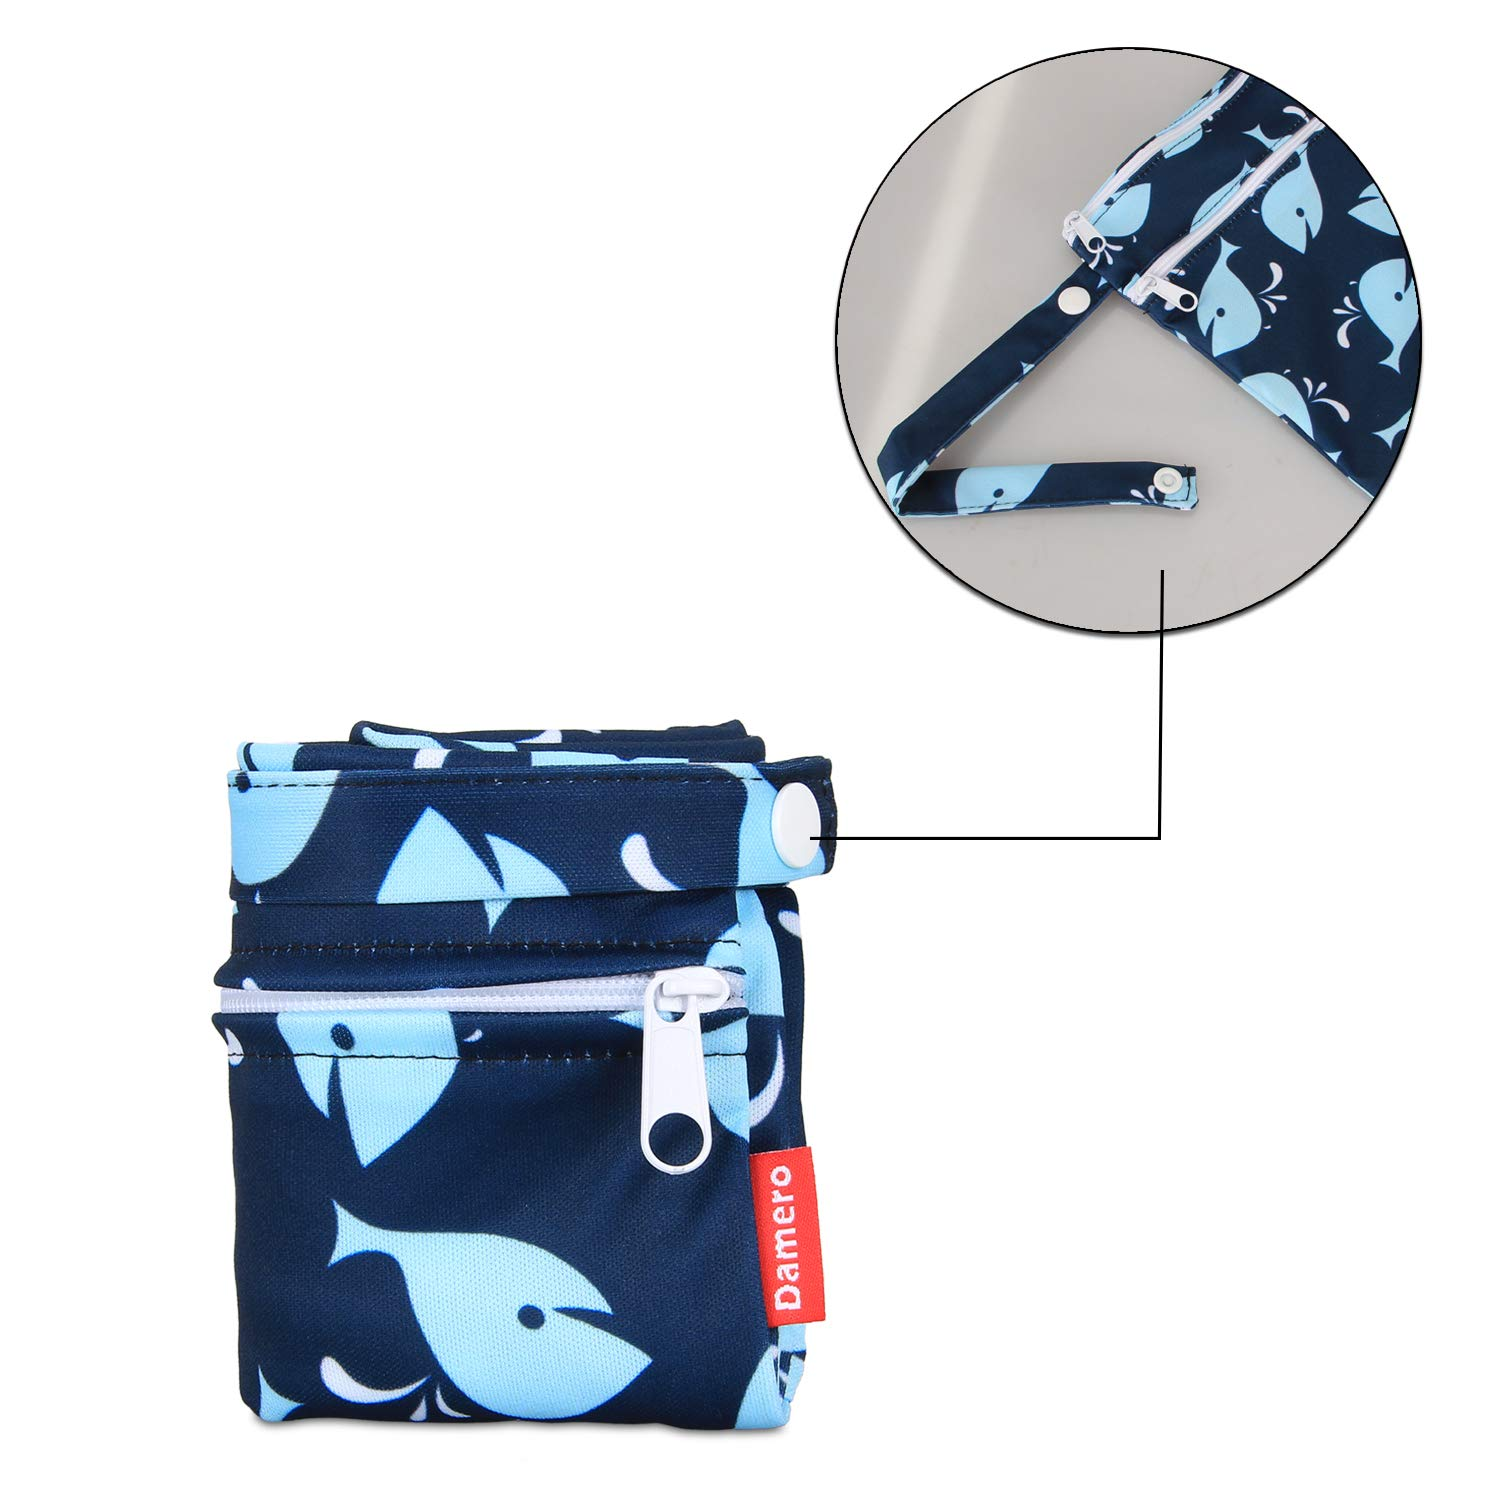 Clothes Damero Cloth Diaper Wet Dry Bags Medium,Colorful Butterfly Pumping Parts Reusable and Water-resistant Travel Wet and Dry Bag with Handle for Cloth Diaper Swimsuit and More